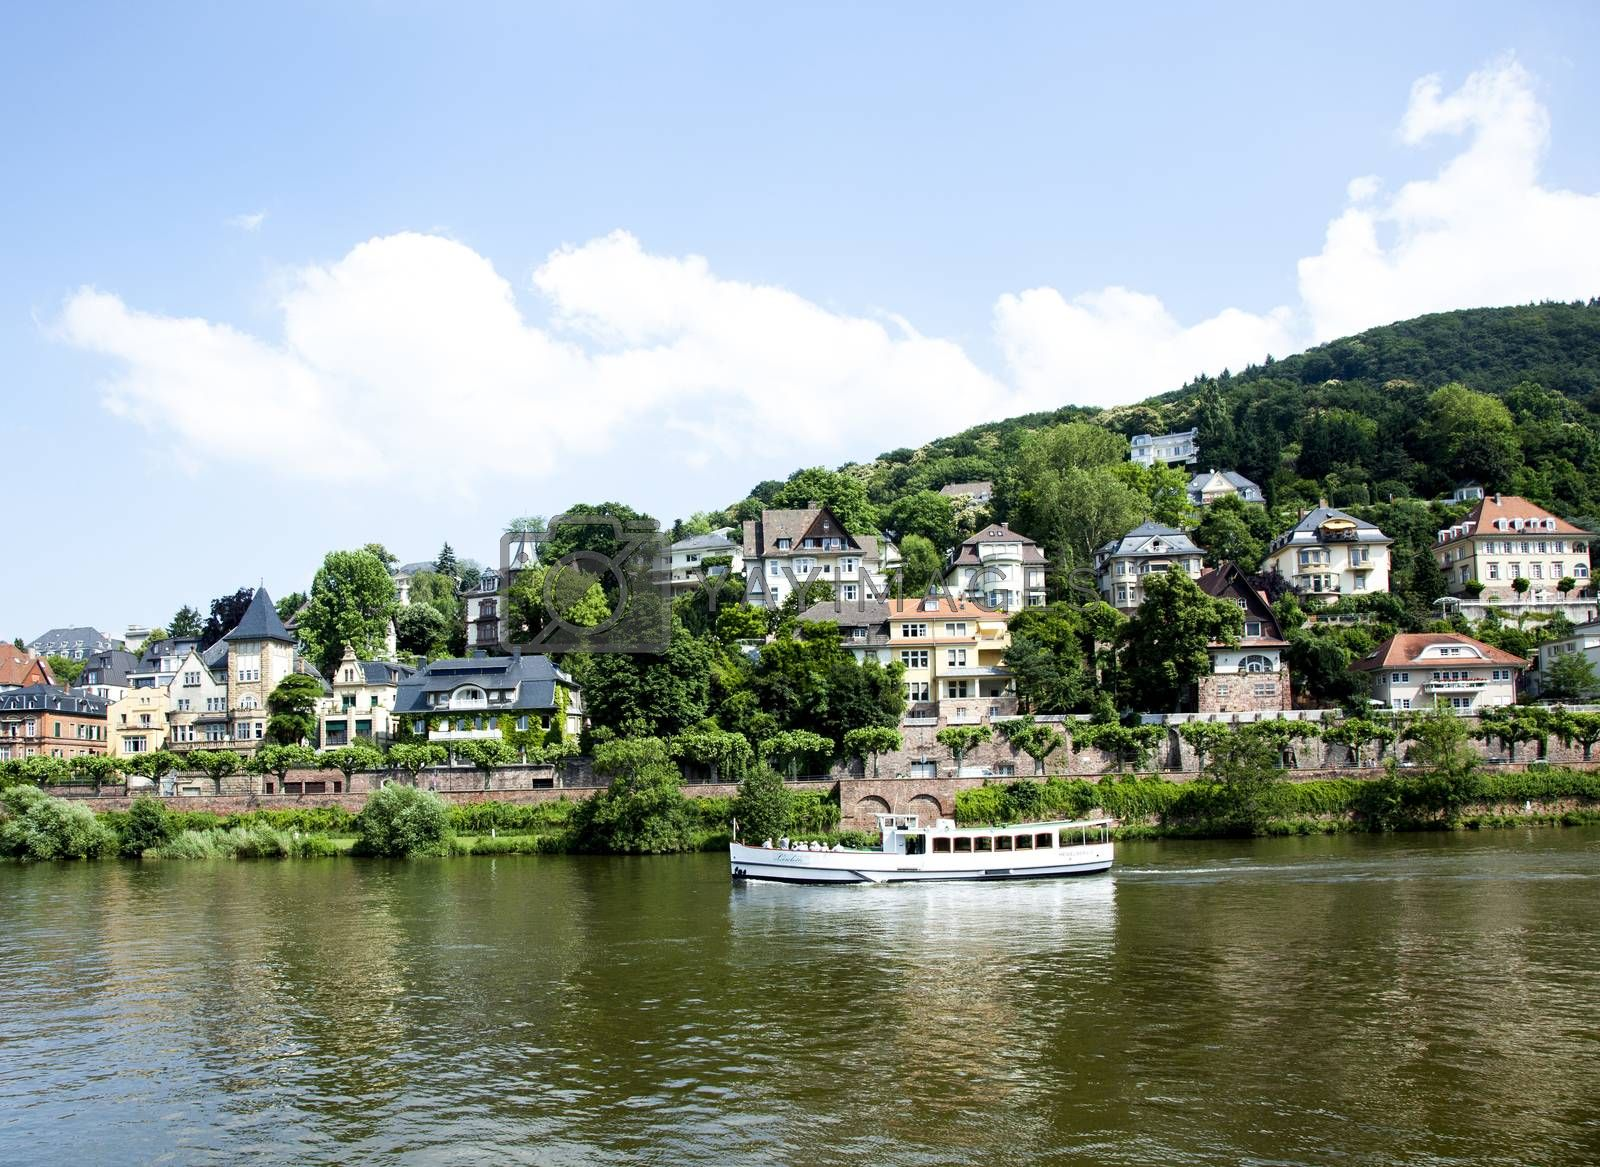 HEIDELBERG, GERMANY - JULY 6, 2013: river cruise ship on the Neckar in Heidelberg. River cruises on scenic Neckar River are popular for visitors of Heidelberg.